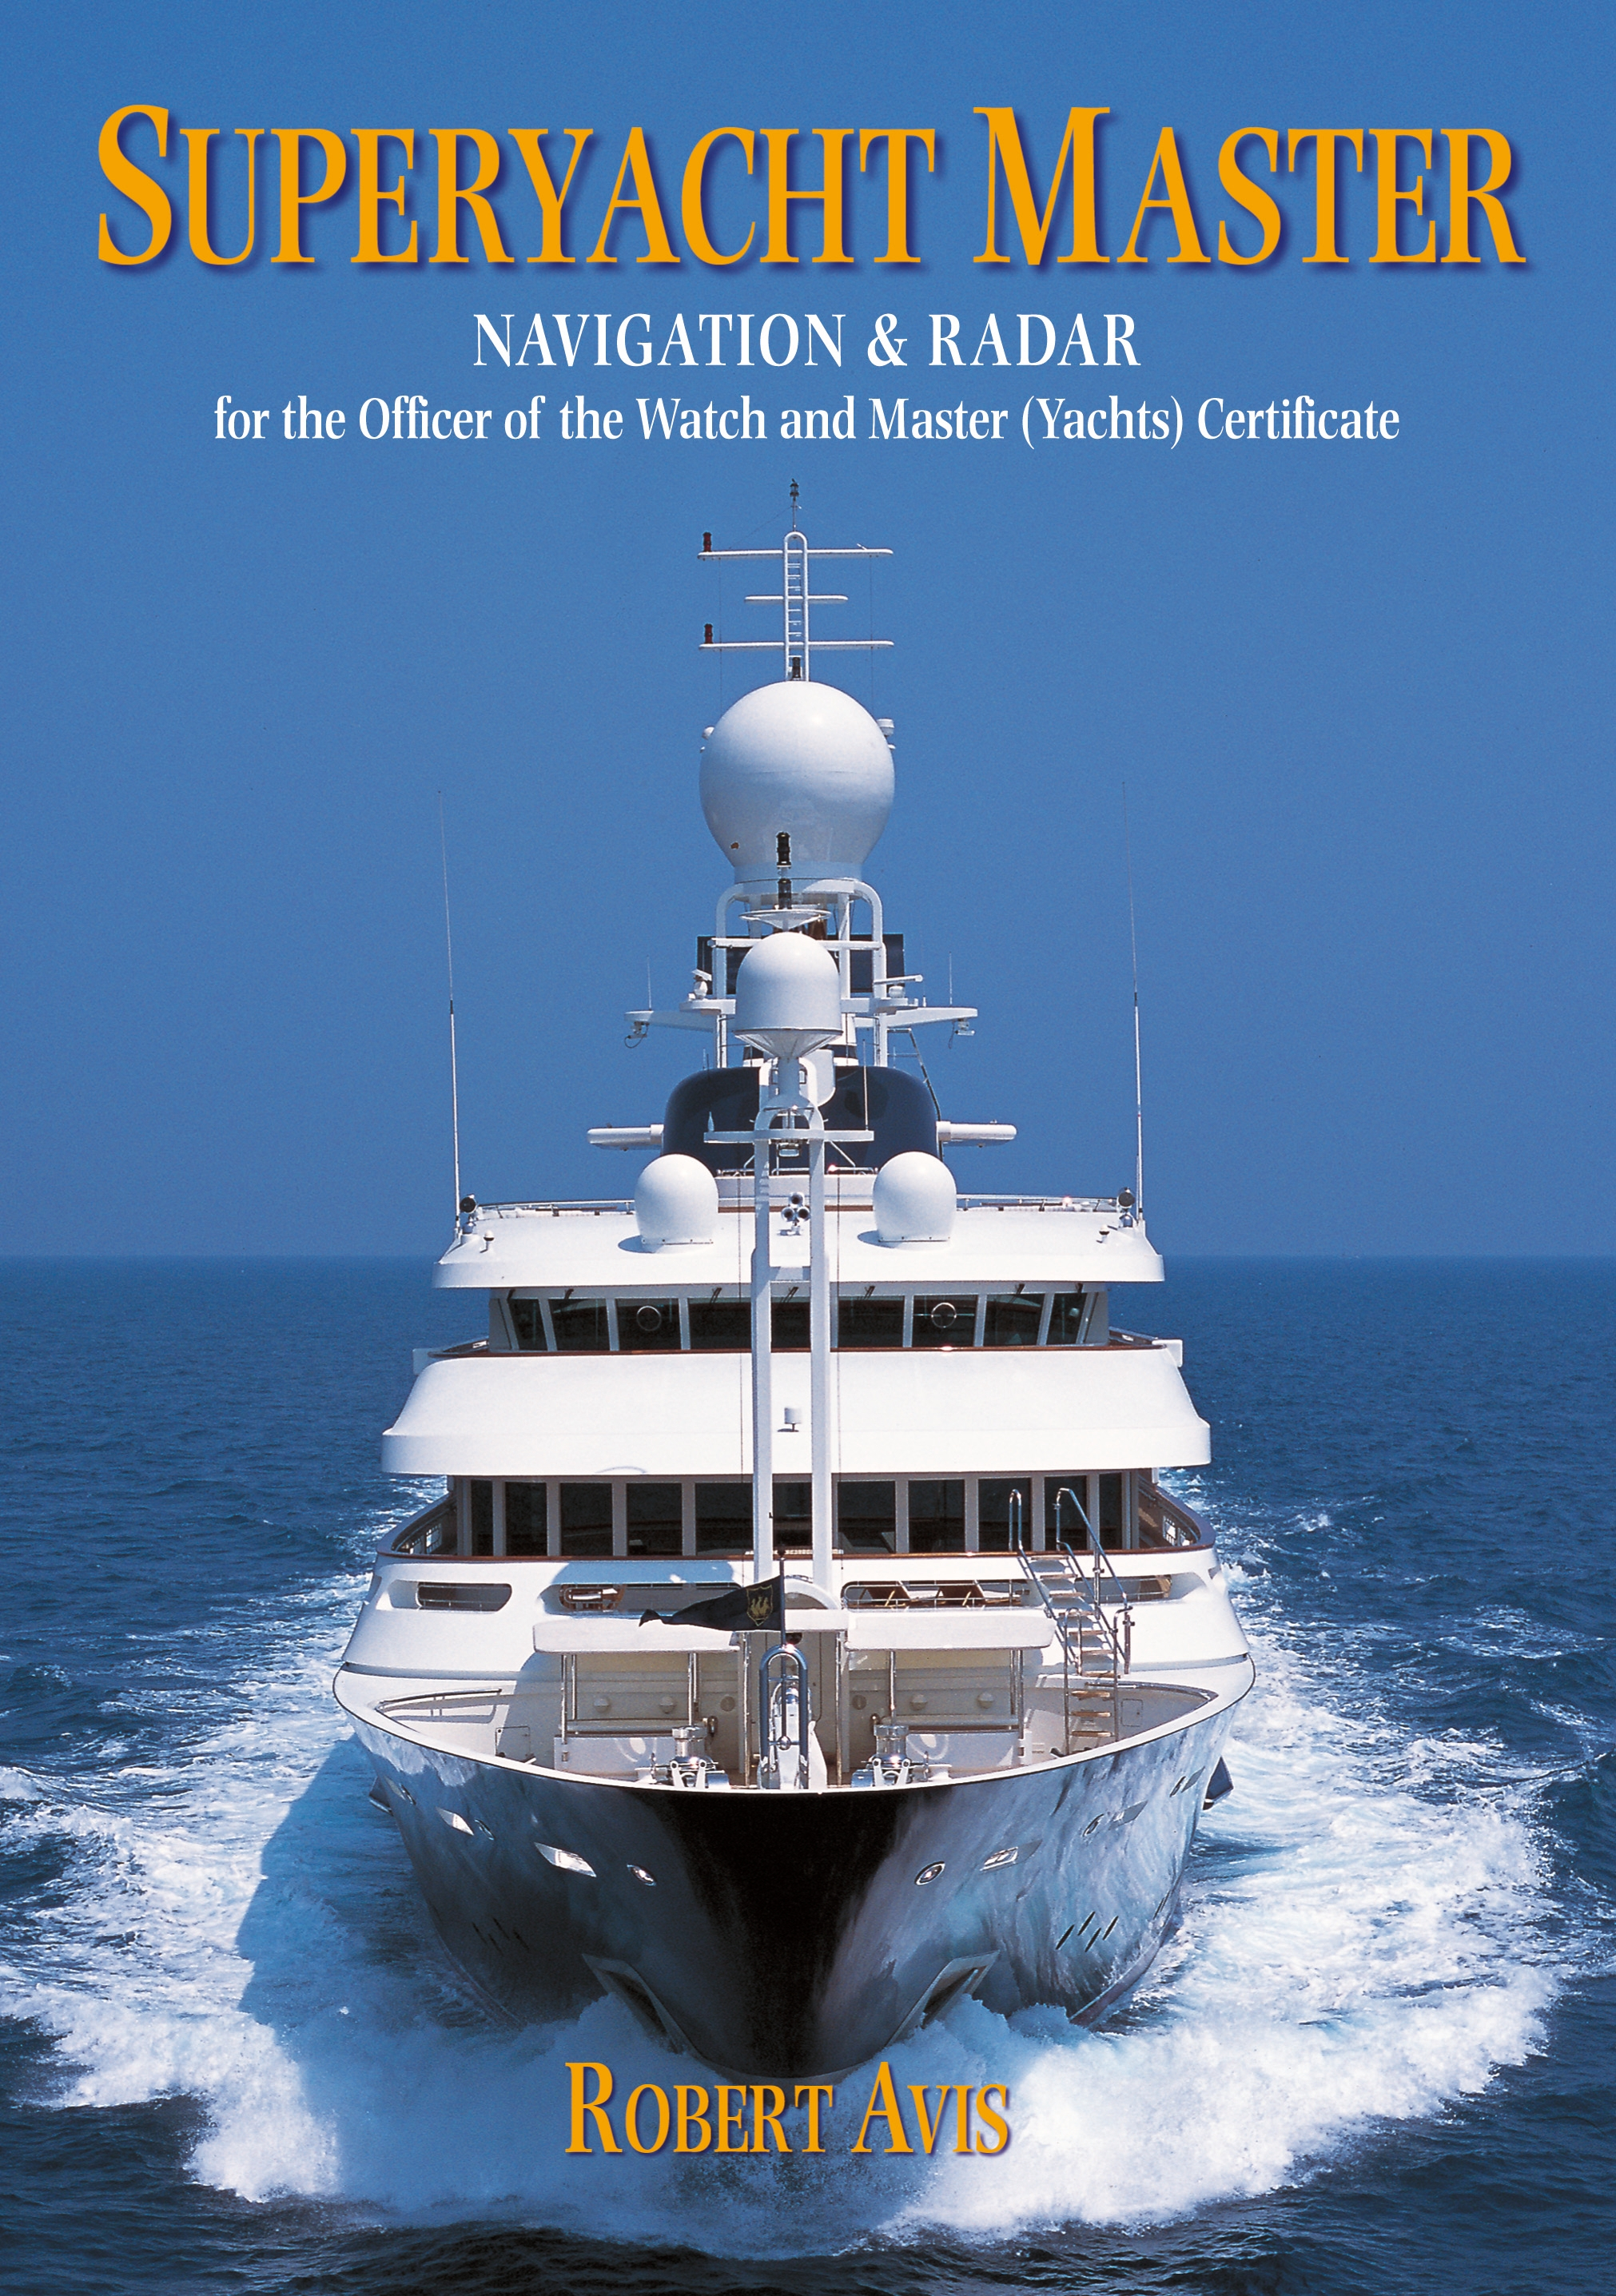 Superyacht Master Navigation and Radar for the Master (Yachts) Certificate